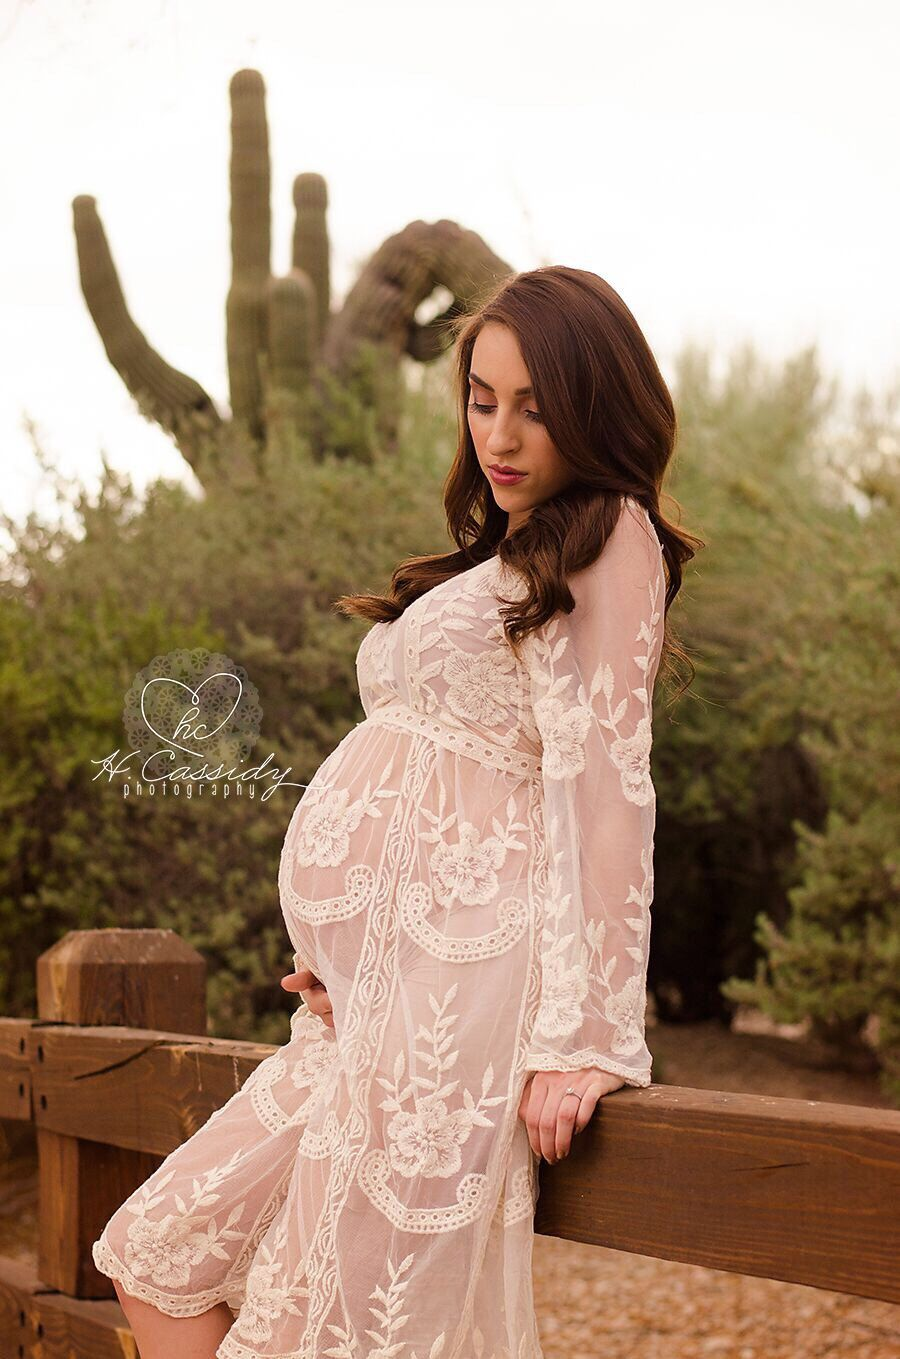 dd351a9b70e8f RTS Knee Length Beige Maternity Dress, Beige Lace Maternity Gown, Lace  Maternity Dress,